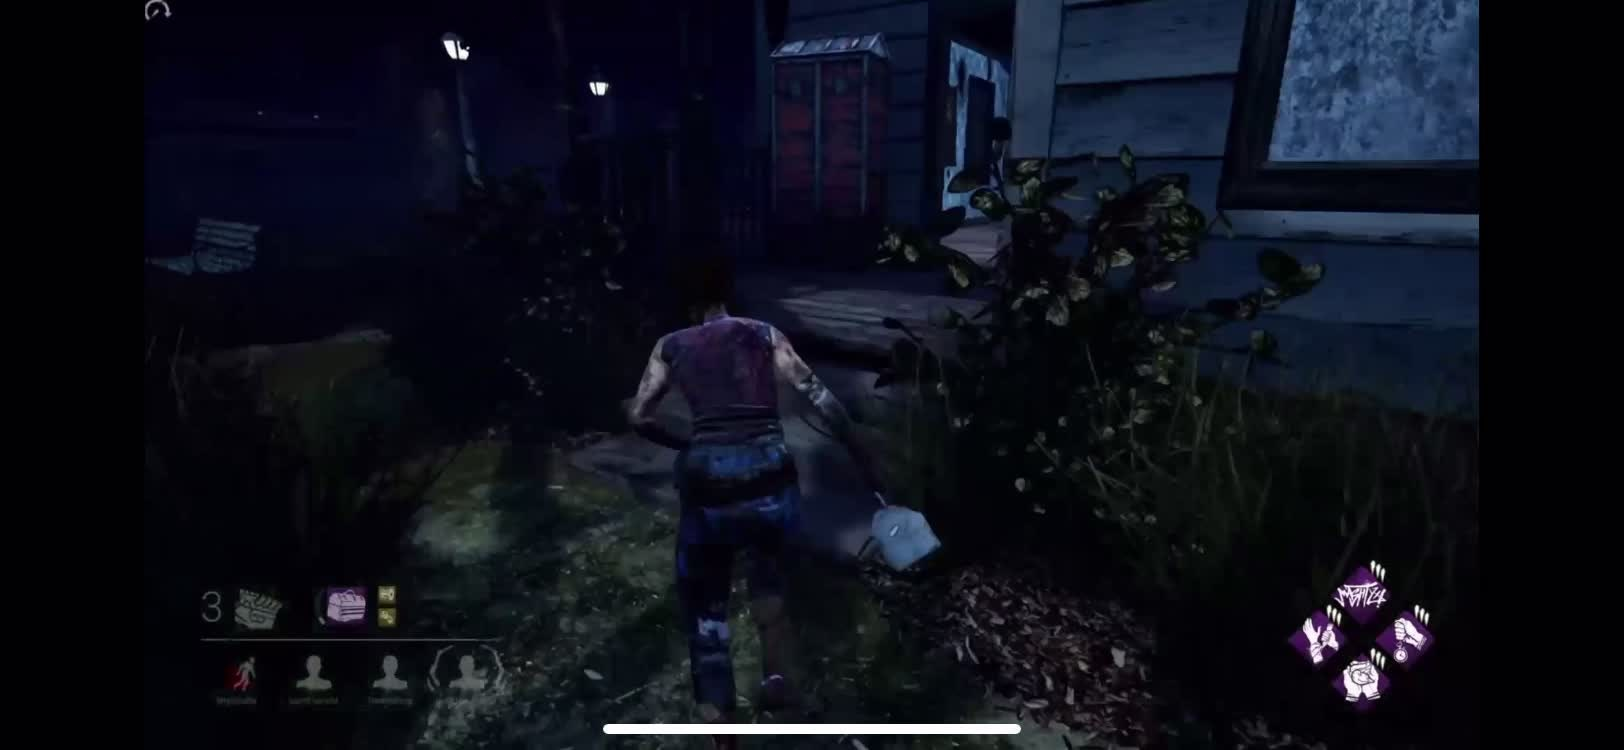 Dead by Daylight: General - IT DON'T BE LIKE THAT 😫 video cover image 0